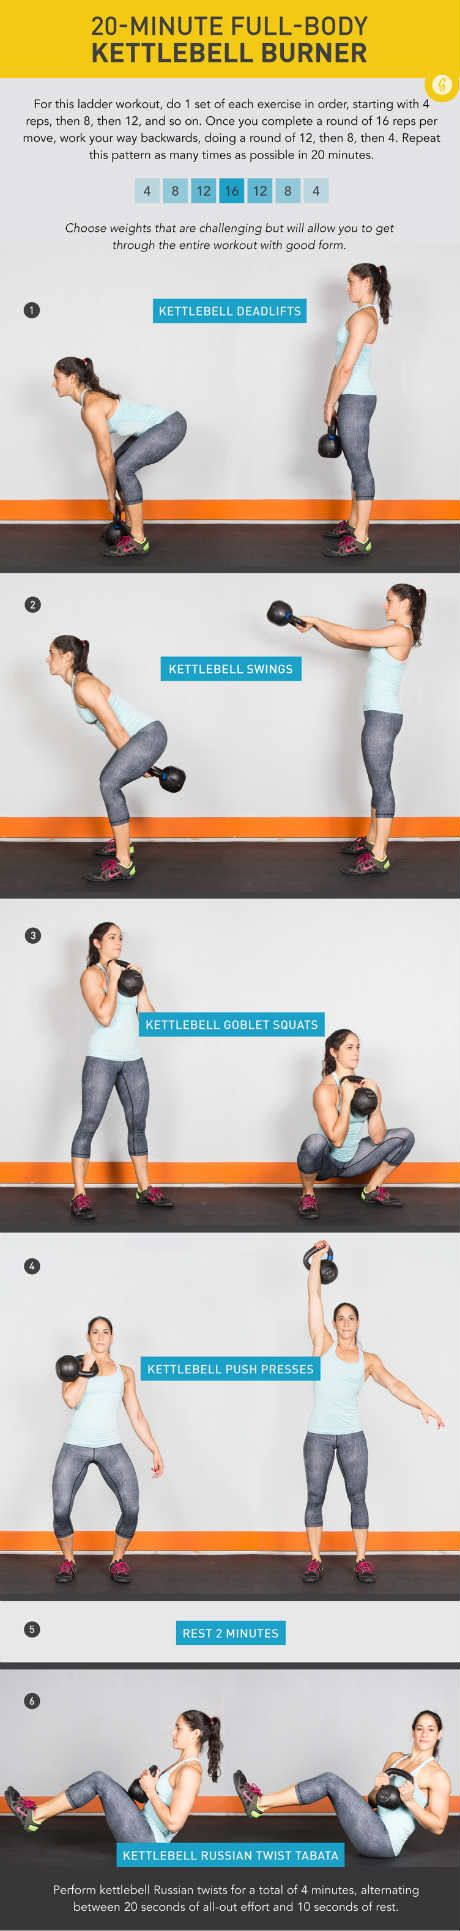 The 20-Minute Kettlebell Workout That Strengthens Your Whole Body   The Active Times